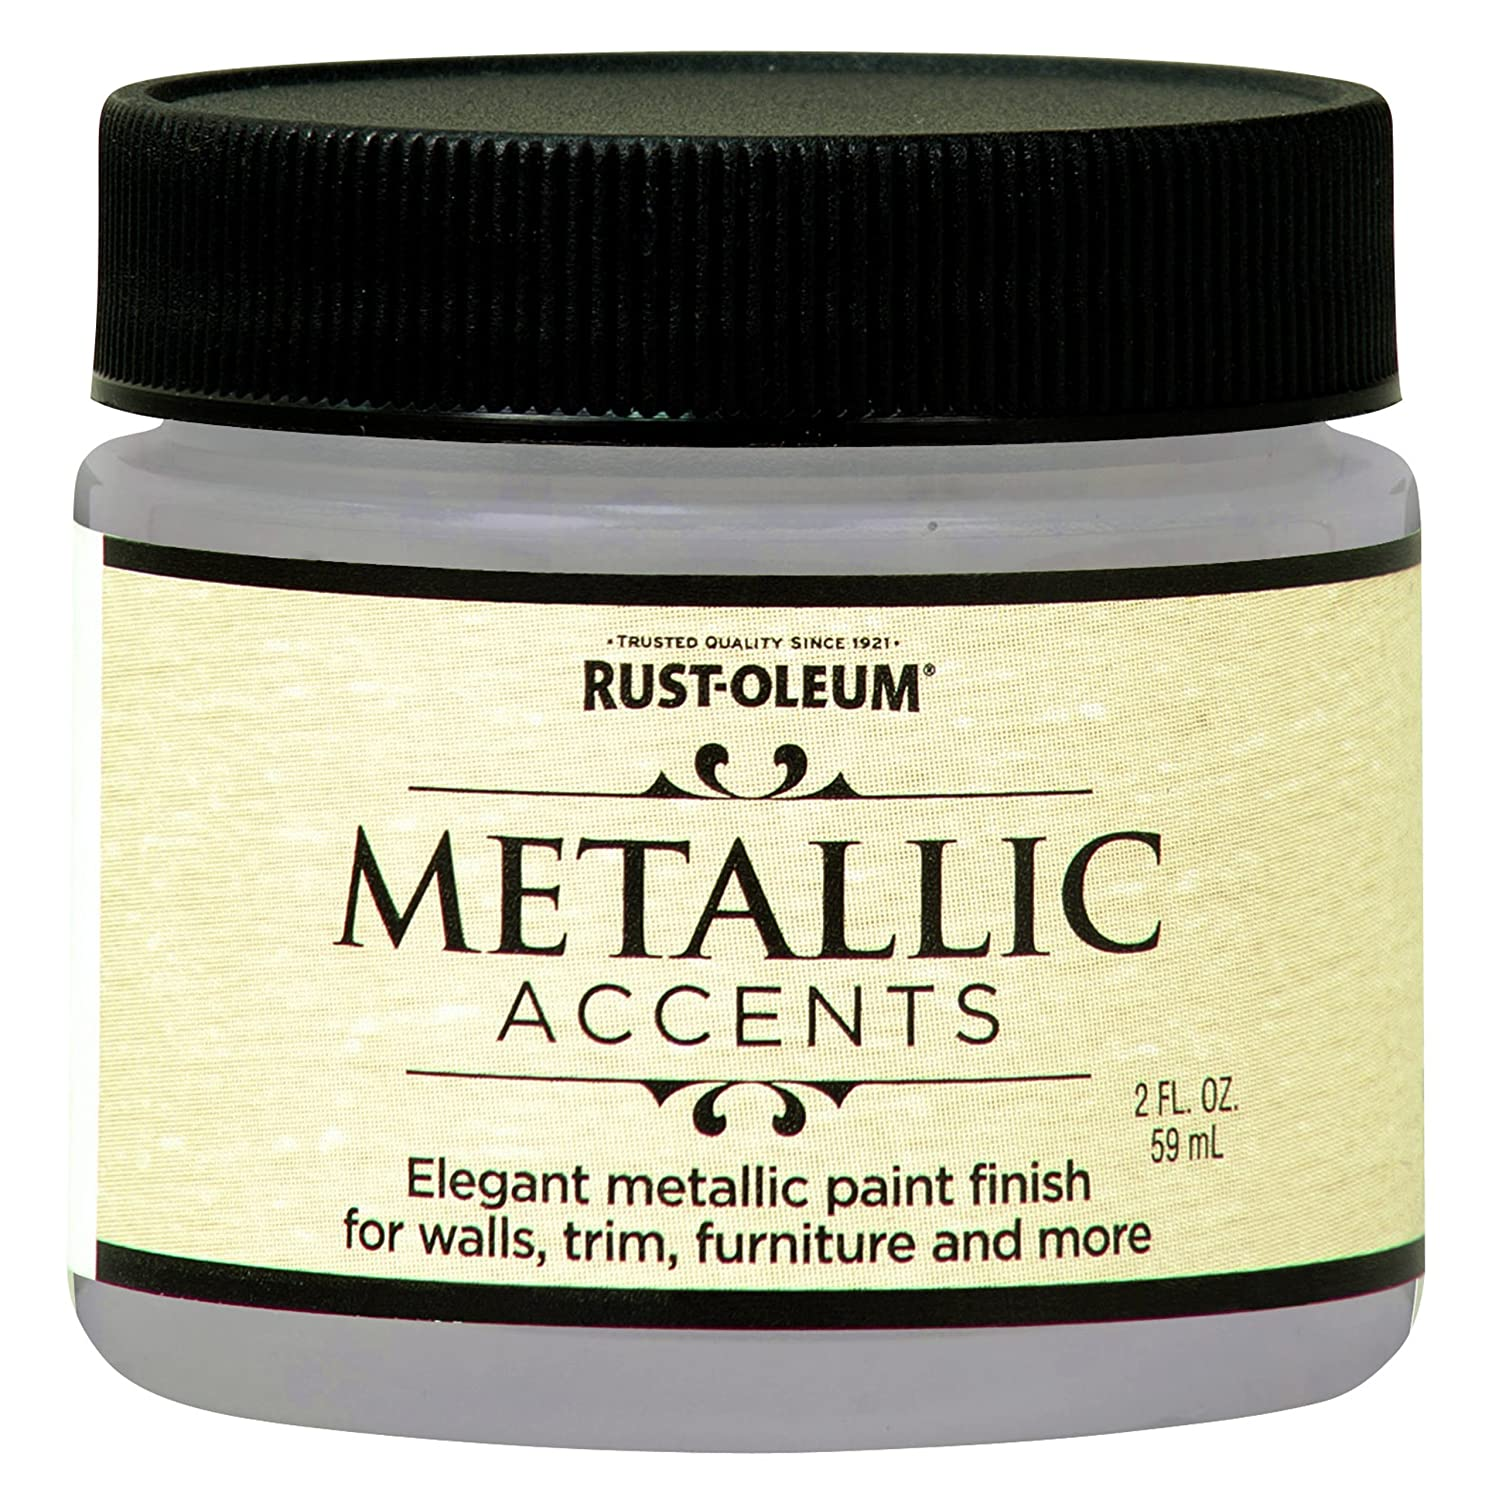 Rust-Oleum 255300 Metallic Accents Paint, 2 oz Trial Size, Champagne